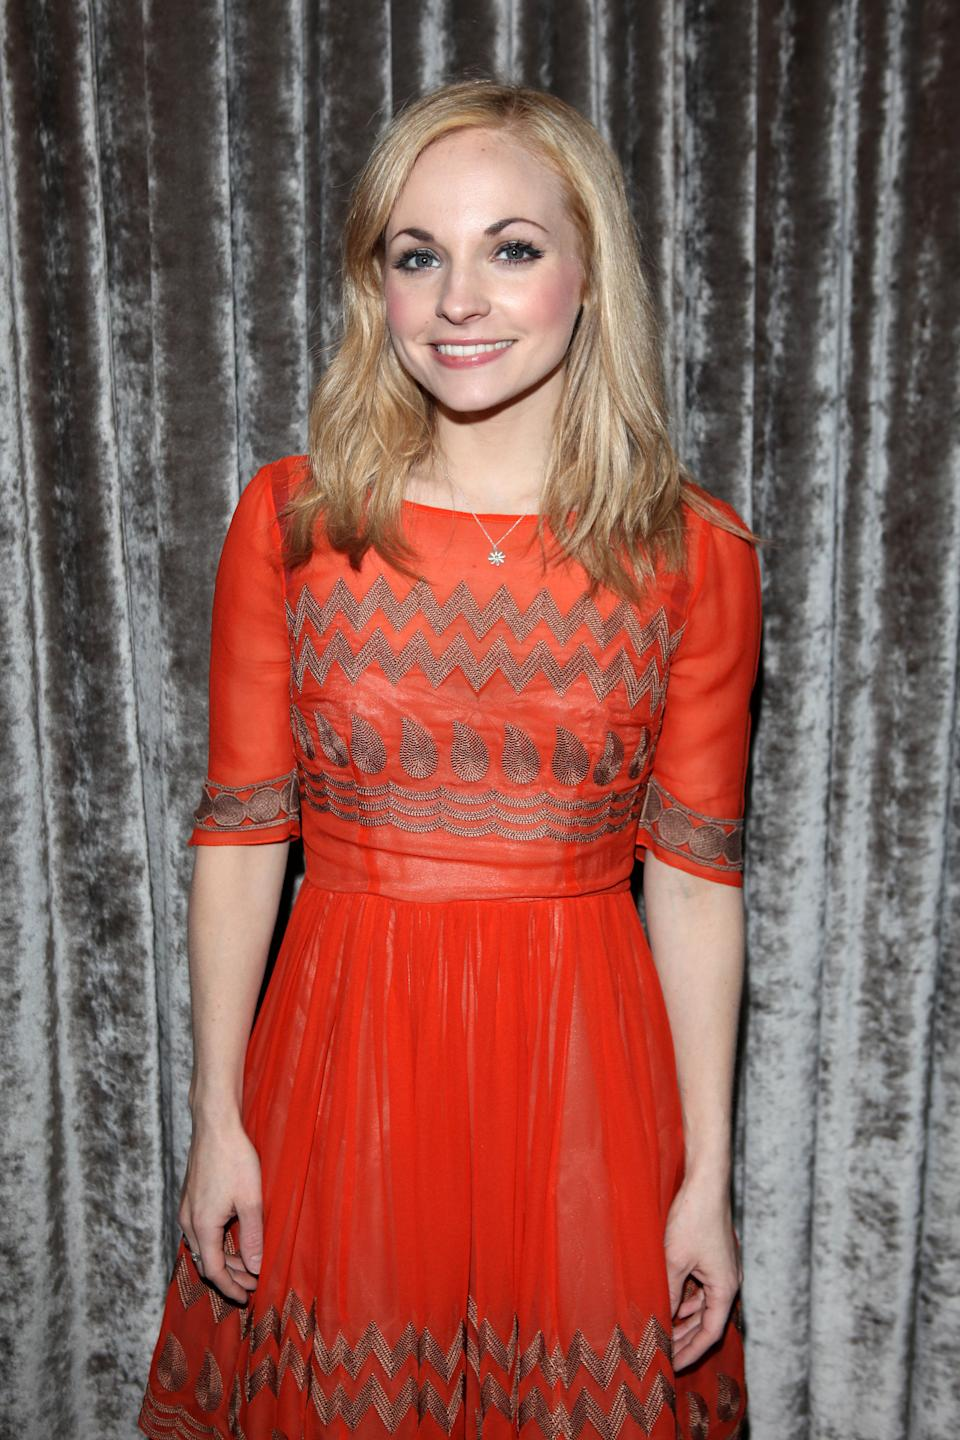 """Georgia Moffett attends the after party for """"What The Butler Saw"""" at the The Waldorf Hilton Hotel on May 16, 2012 in London, England. (Photo by Dave M. Benett/Getty Images)"""